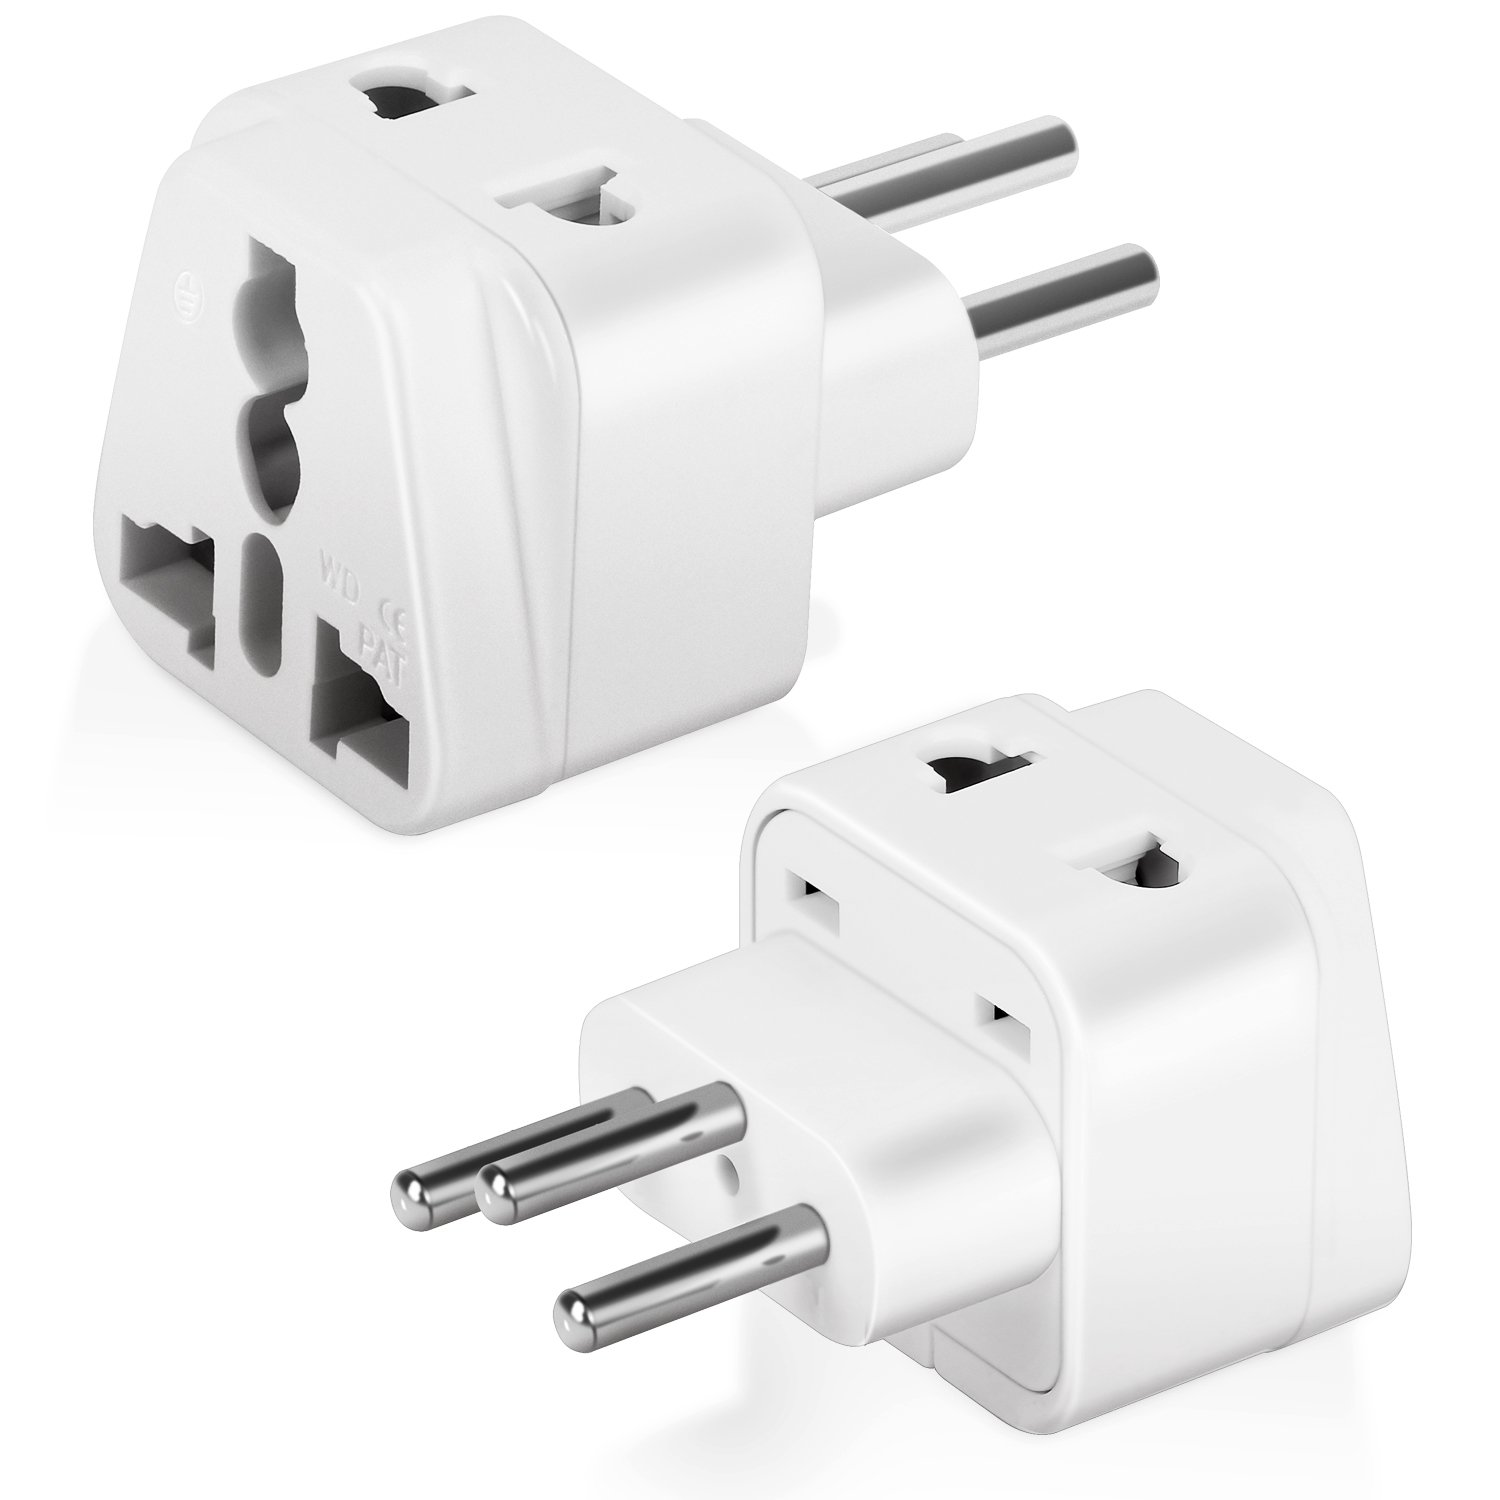 AC Power Travel Adapter Plug Boxeroo For Australia China New Zealand Fiji Islands with Dual Plug-in Ports and Grounded (Type I) - 2 Pack